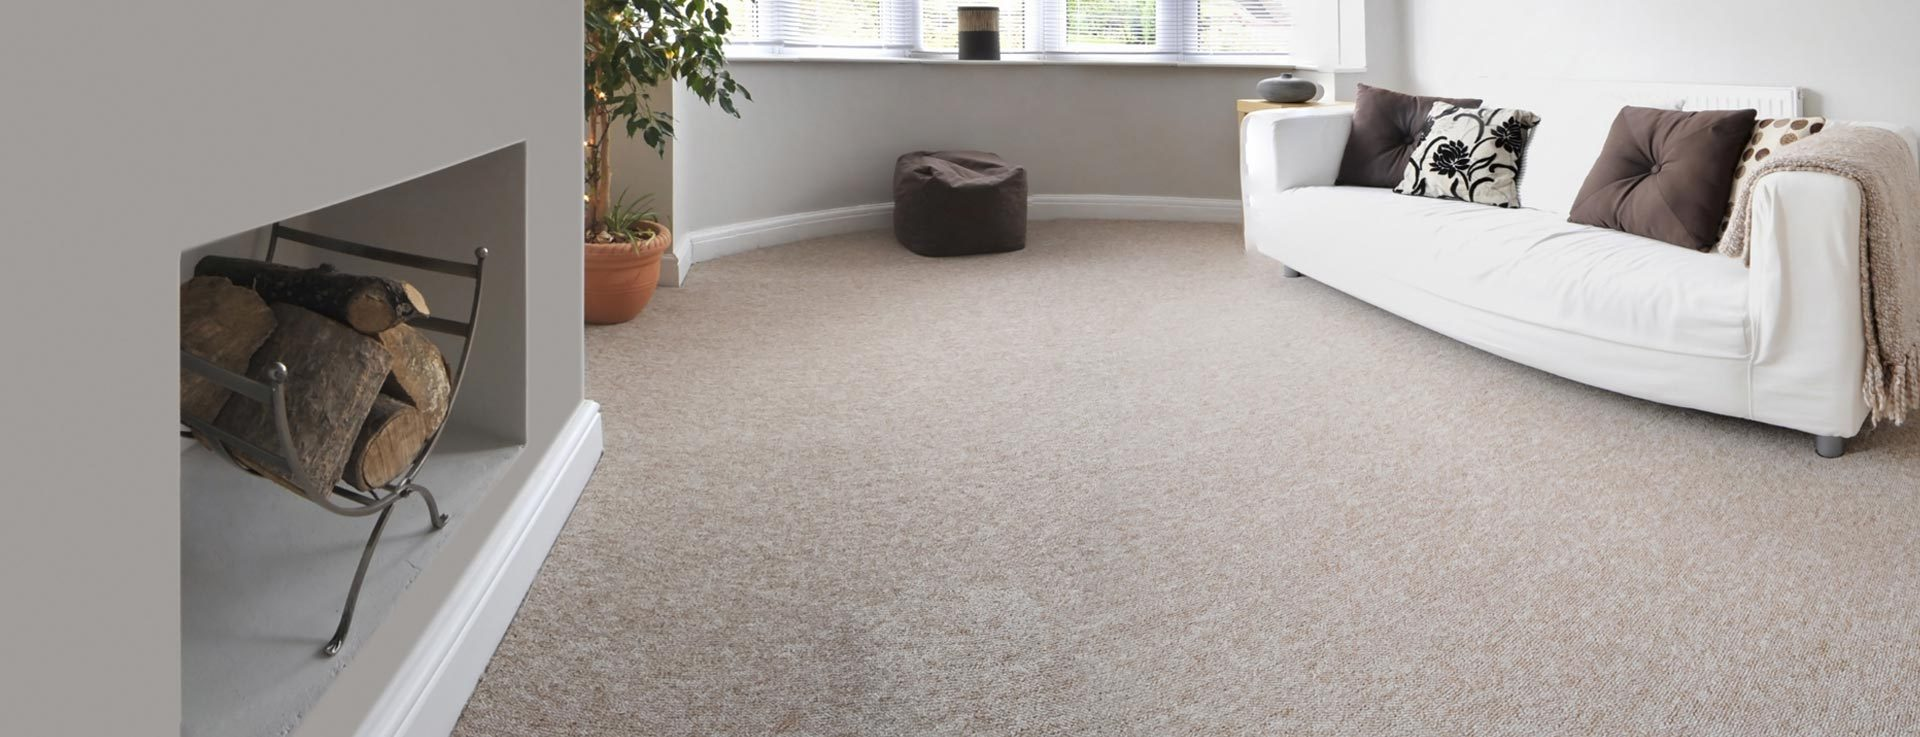 Carpet And Furniture Cleaning Perth Www Allaboutyouth Net